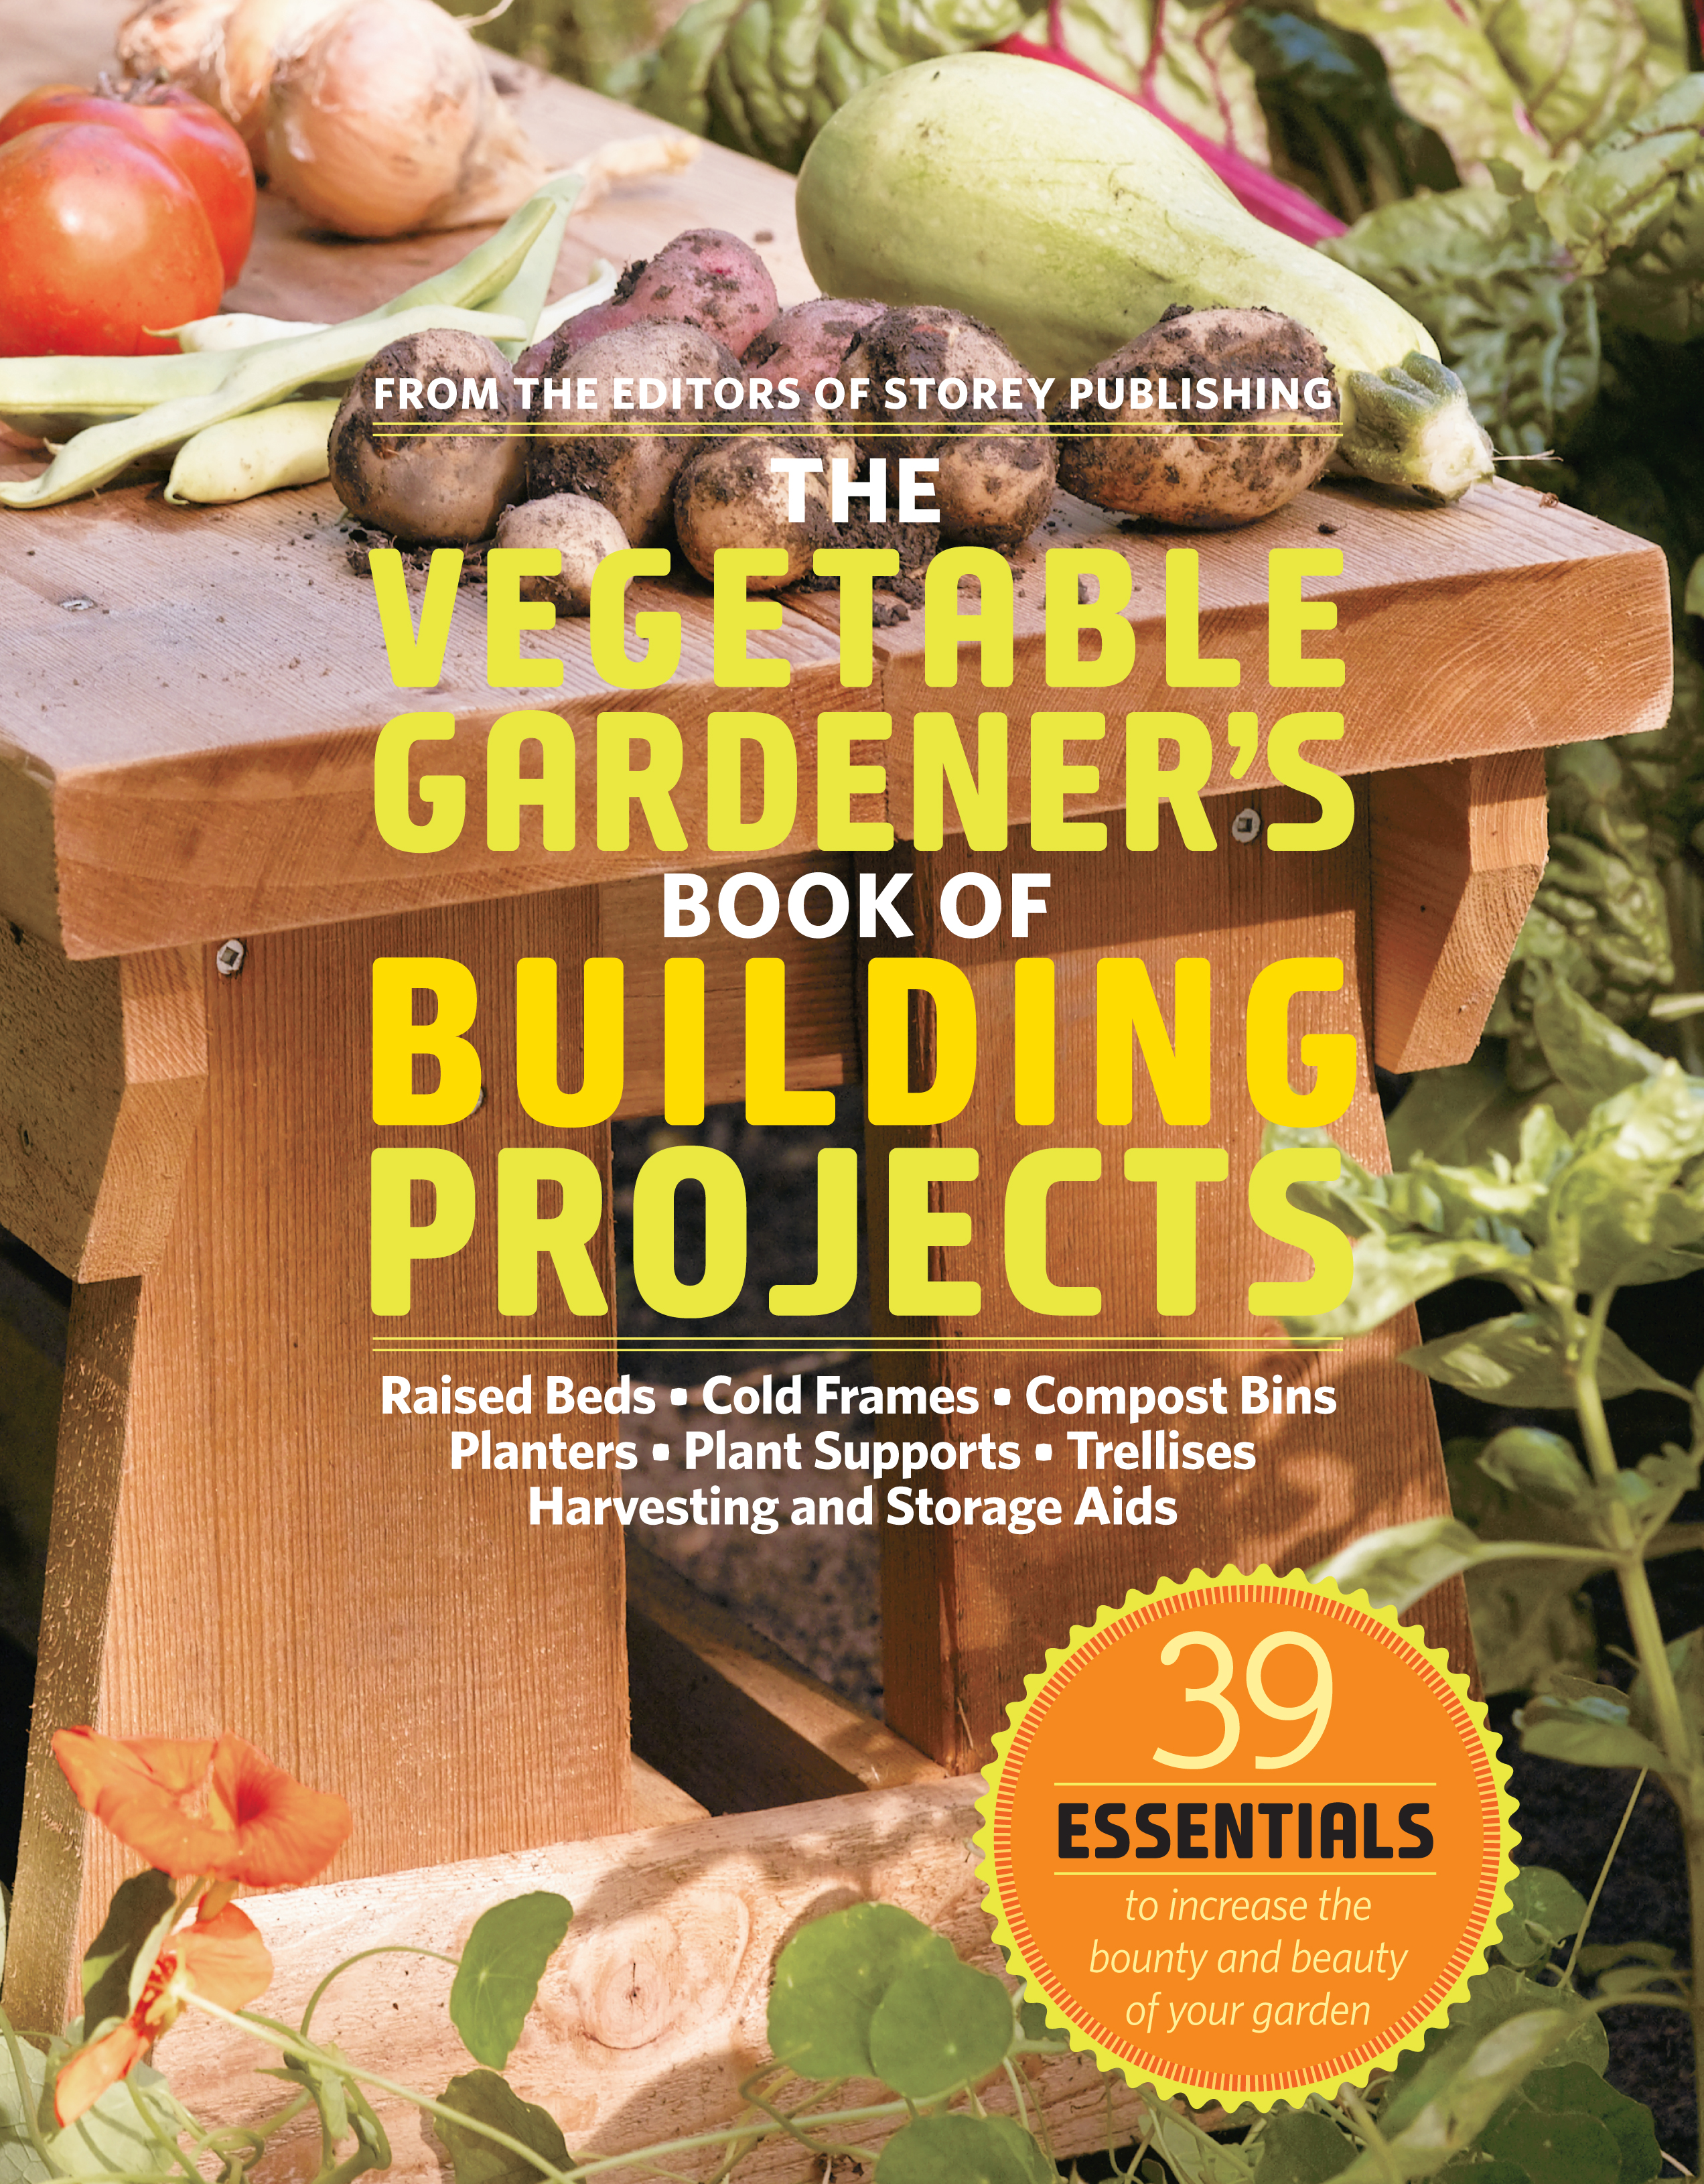 The Vegetable Gardener's Book of Building Projects 39 Essentials to Increase the Bounty and Beauty of Your Garden